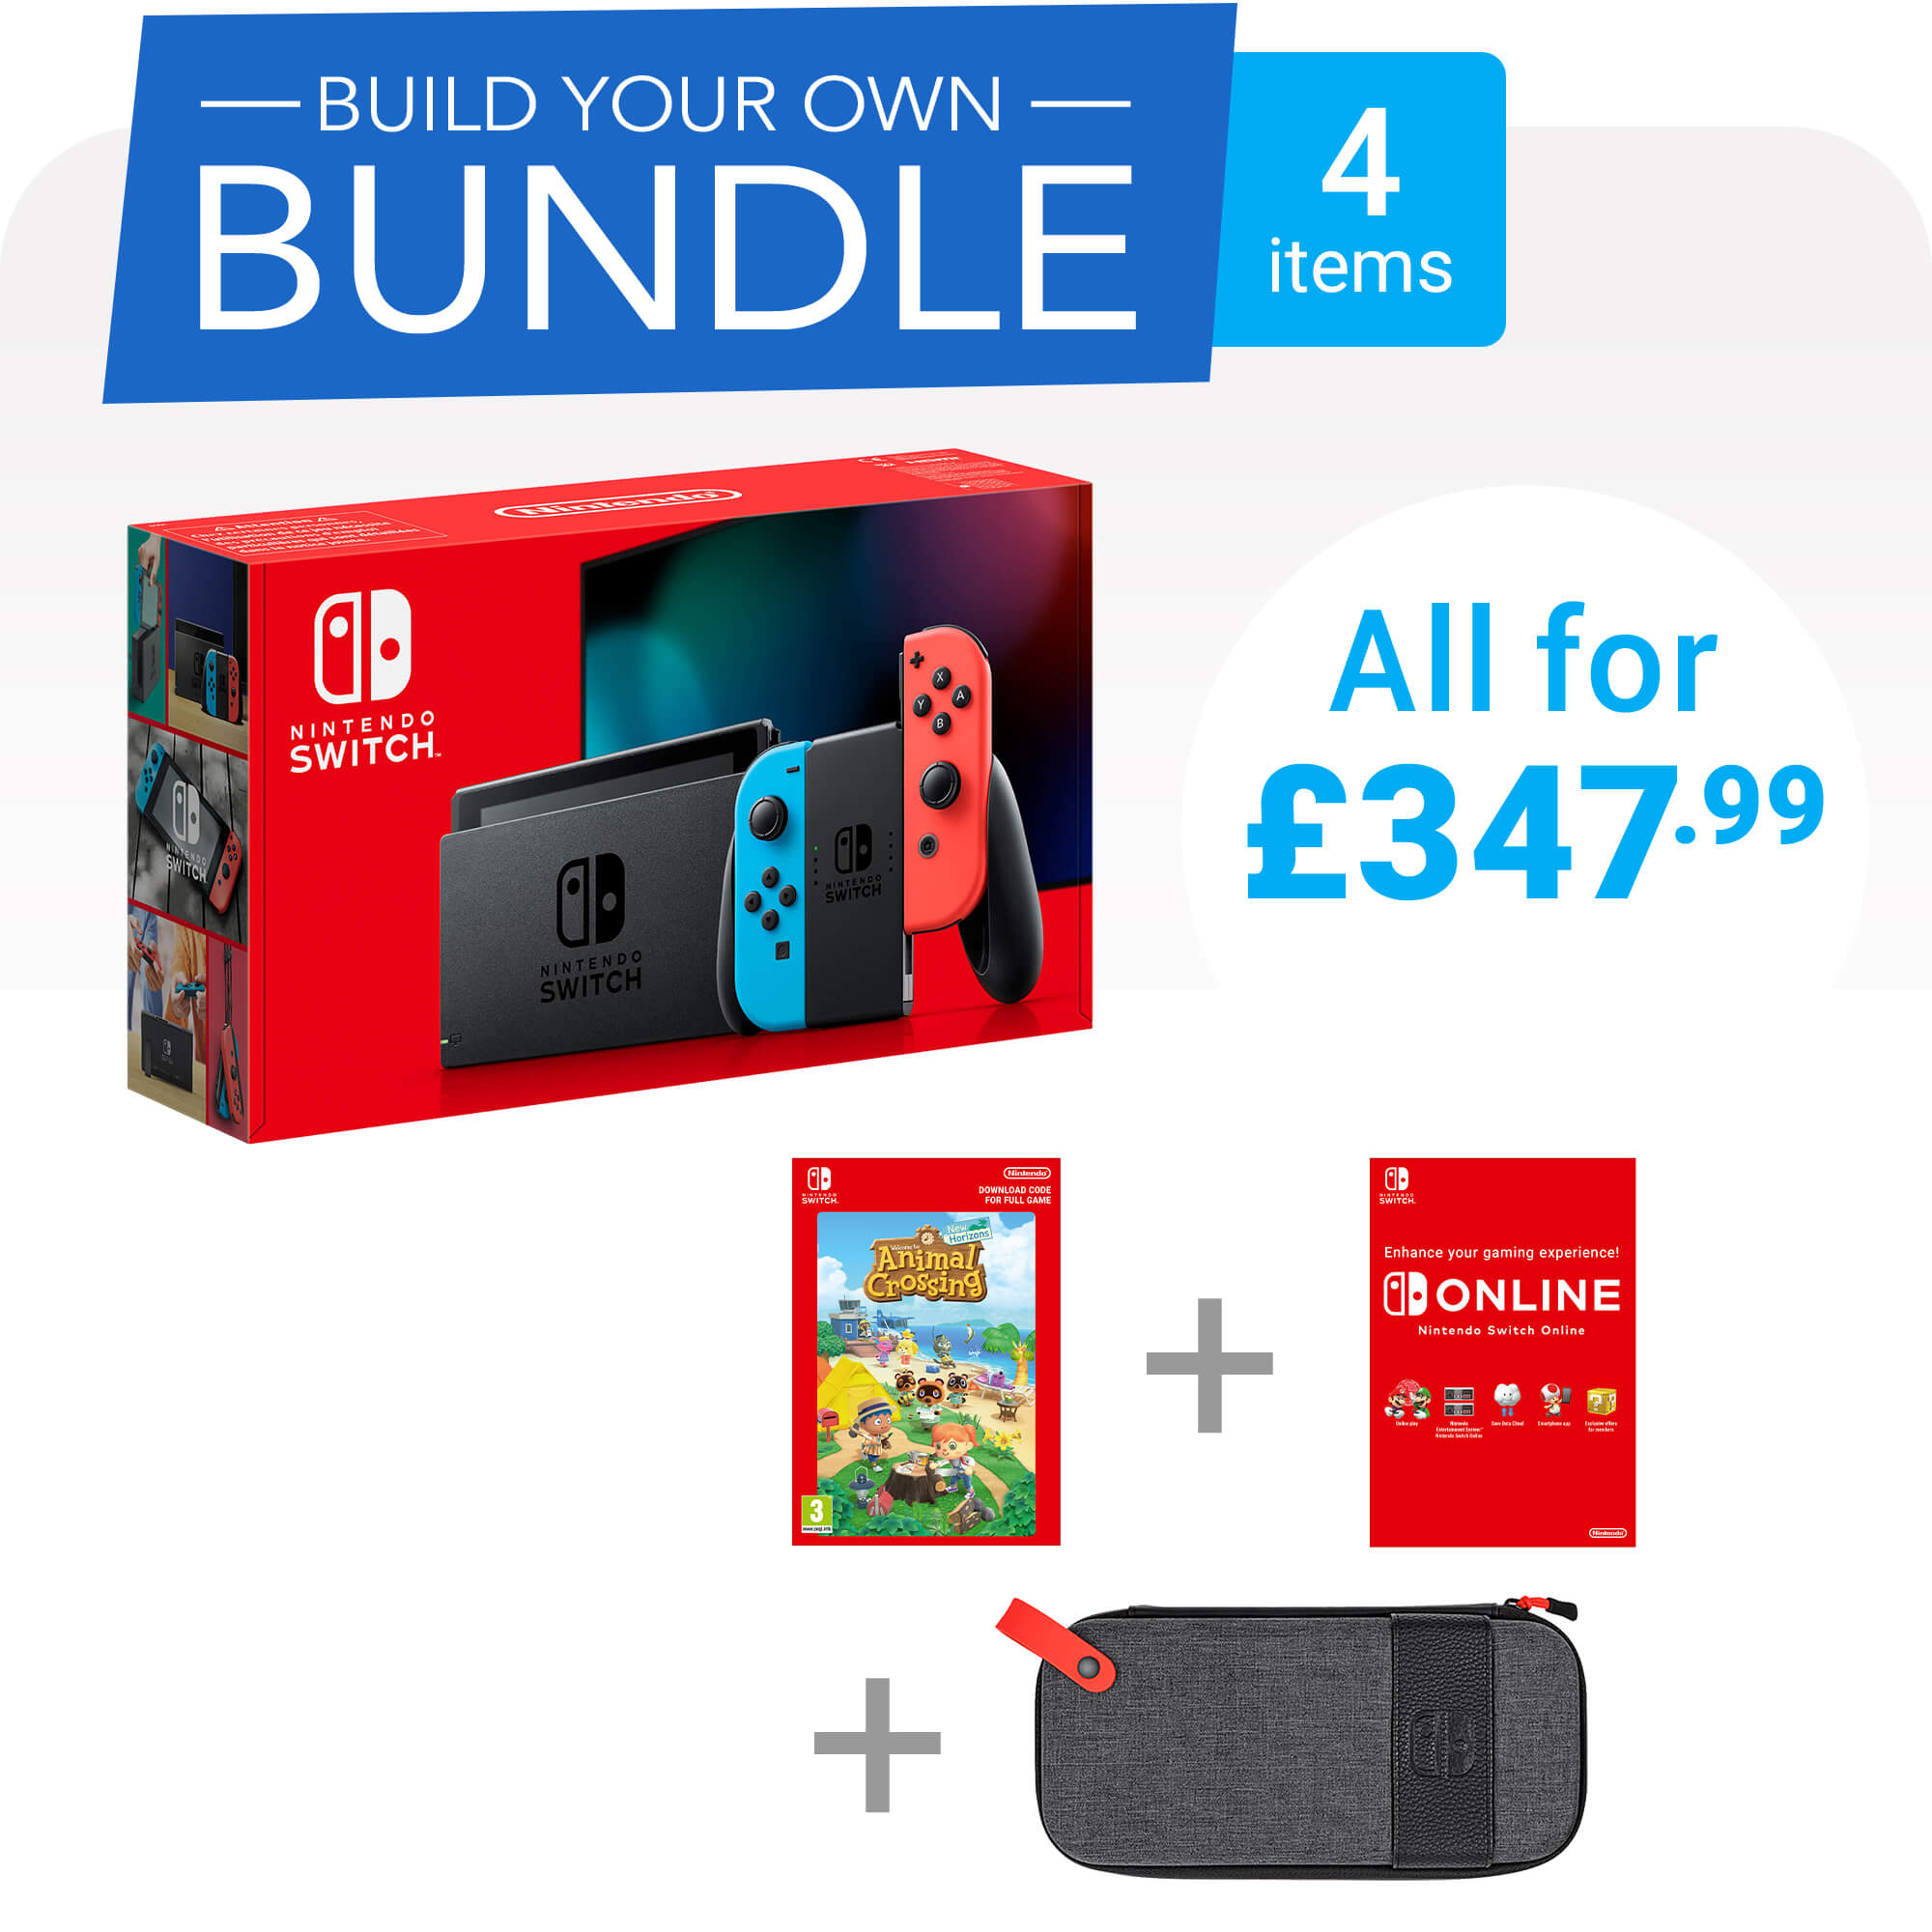 Build Your Own Nintendo Switch Bundle - 4 items - £347.99